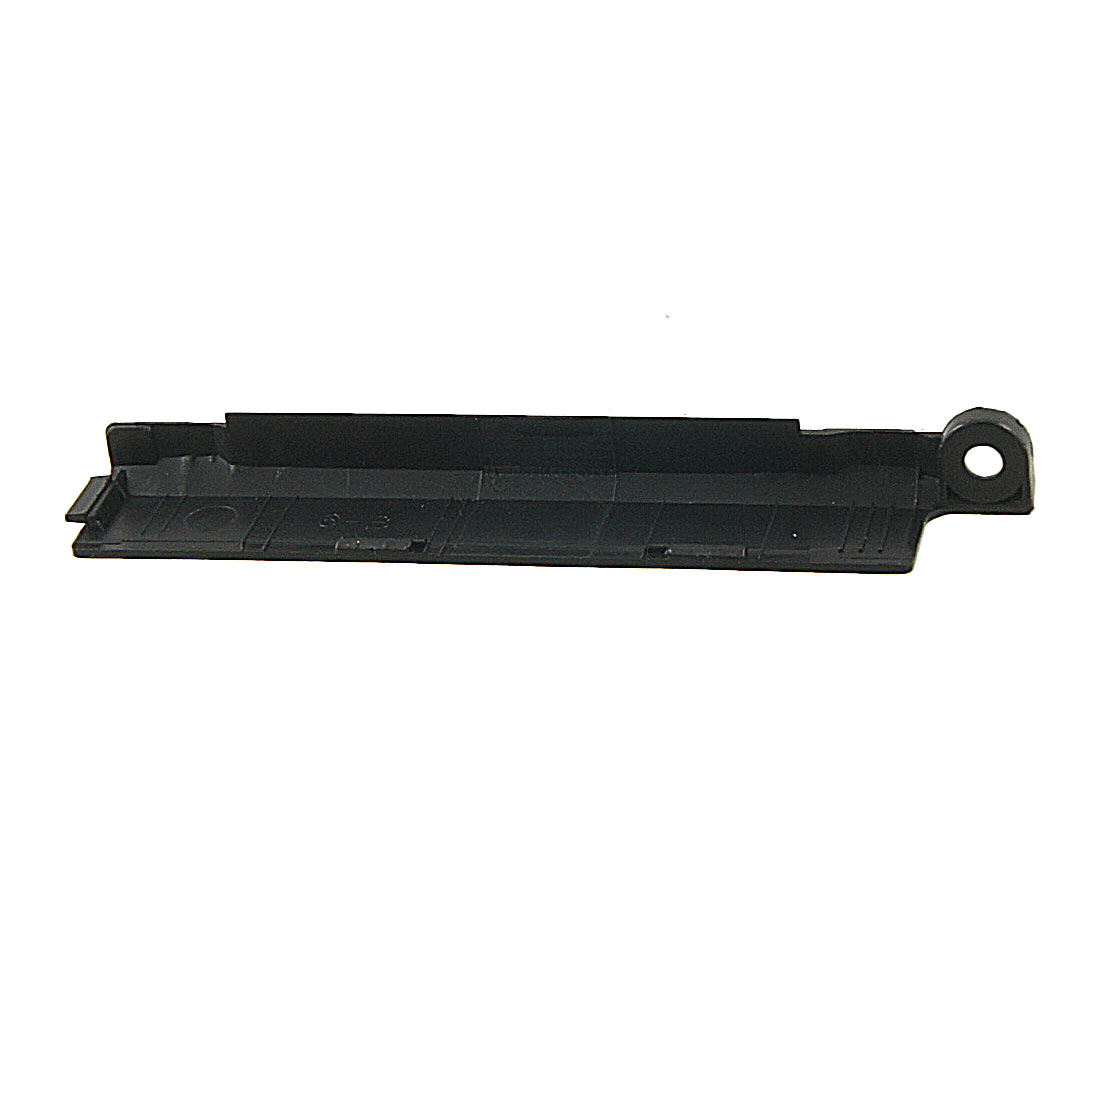 Replacement Black Hard Drive Cover for IBM Lenovo Thinkpad X200